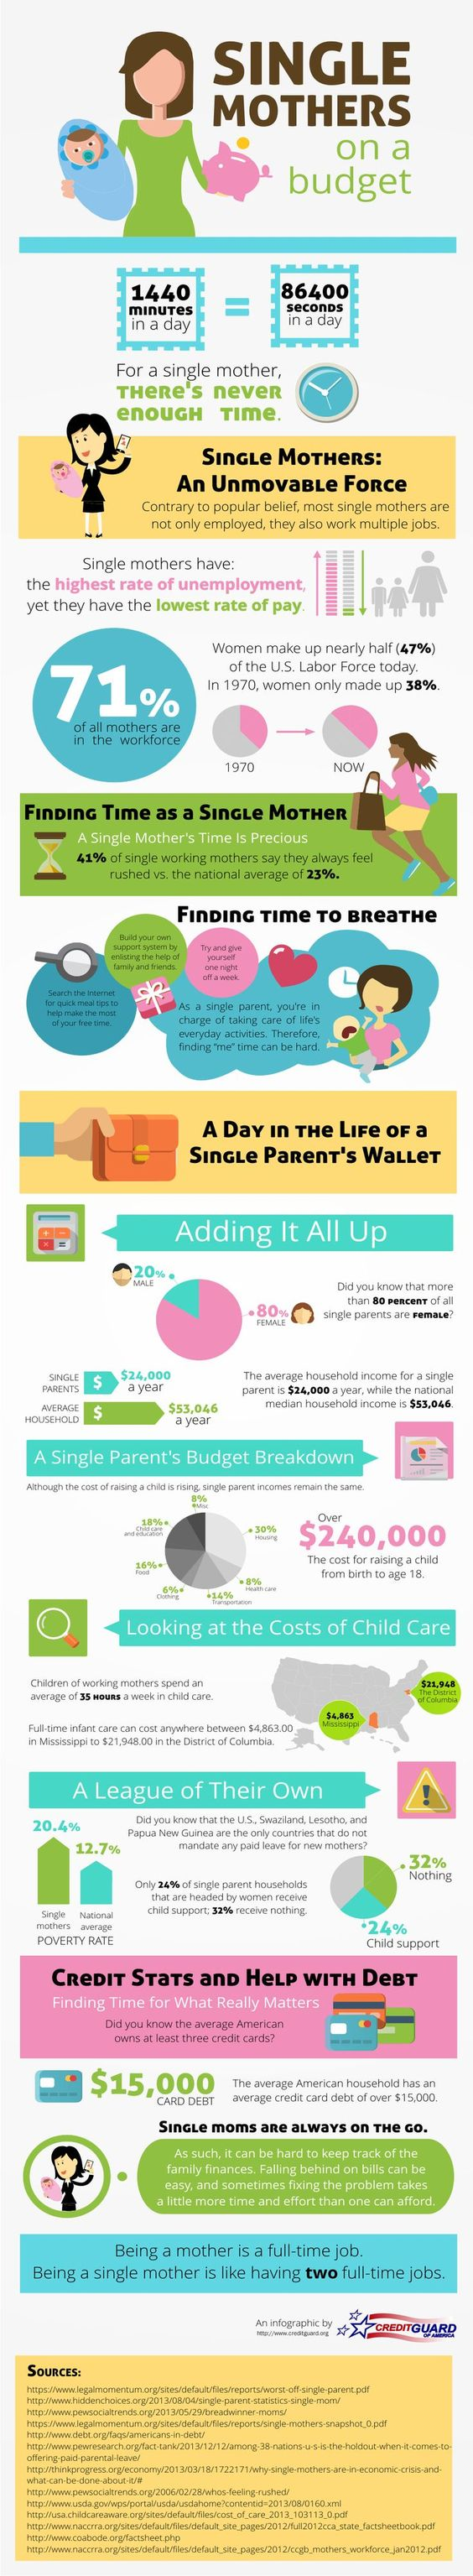 Single Mothers on a Budget #SingleMothers #Budget #Finance #Women #infographic single mom resources, single parenting